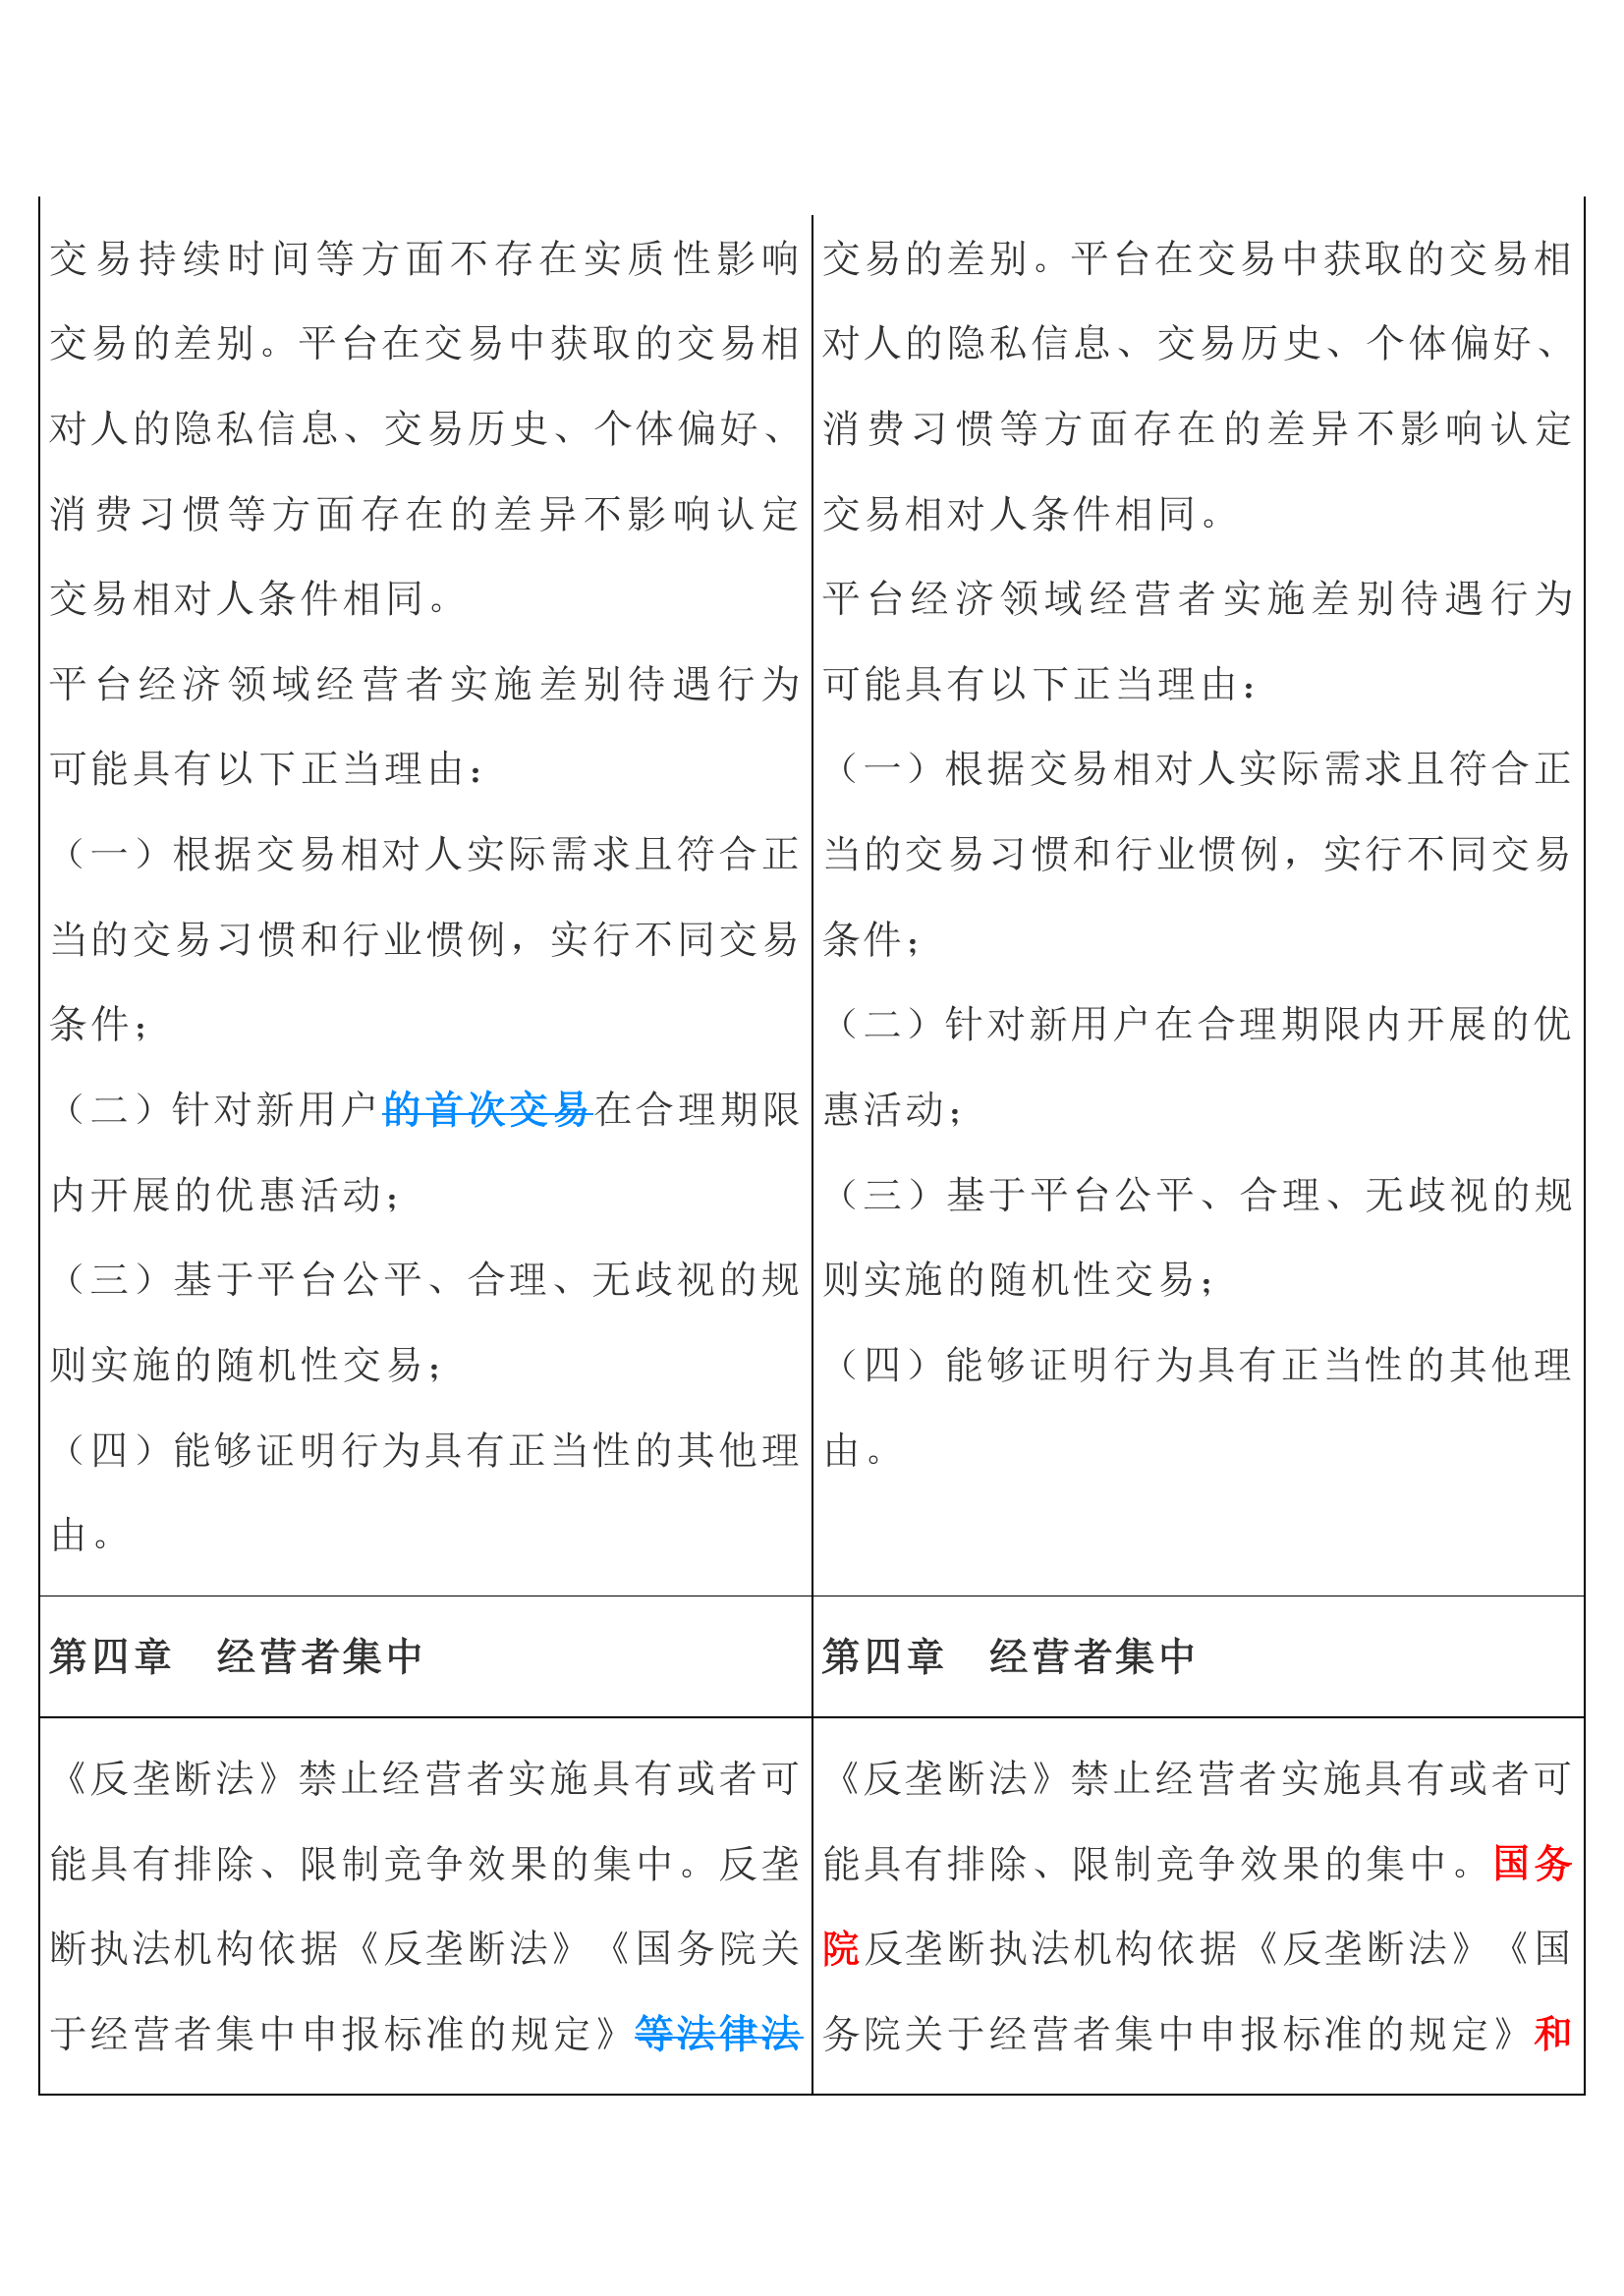 share_pdf_exportpage24(2).png